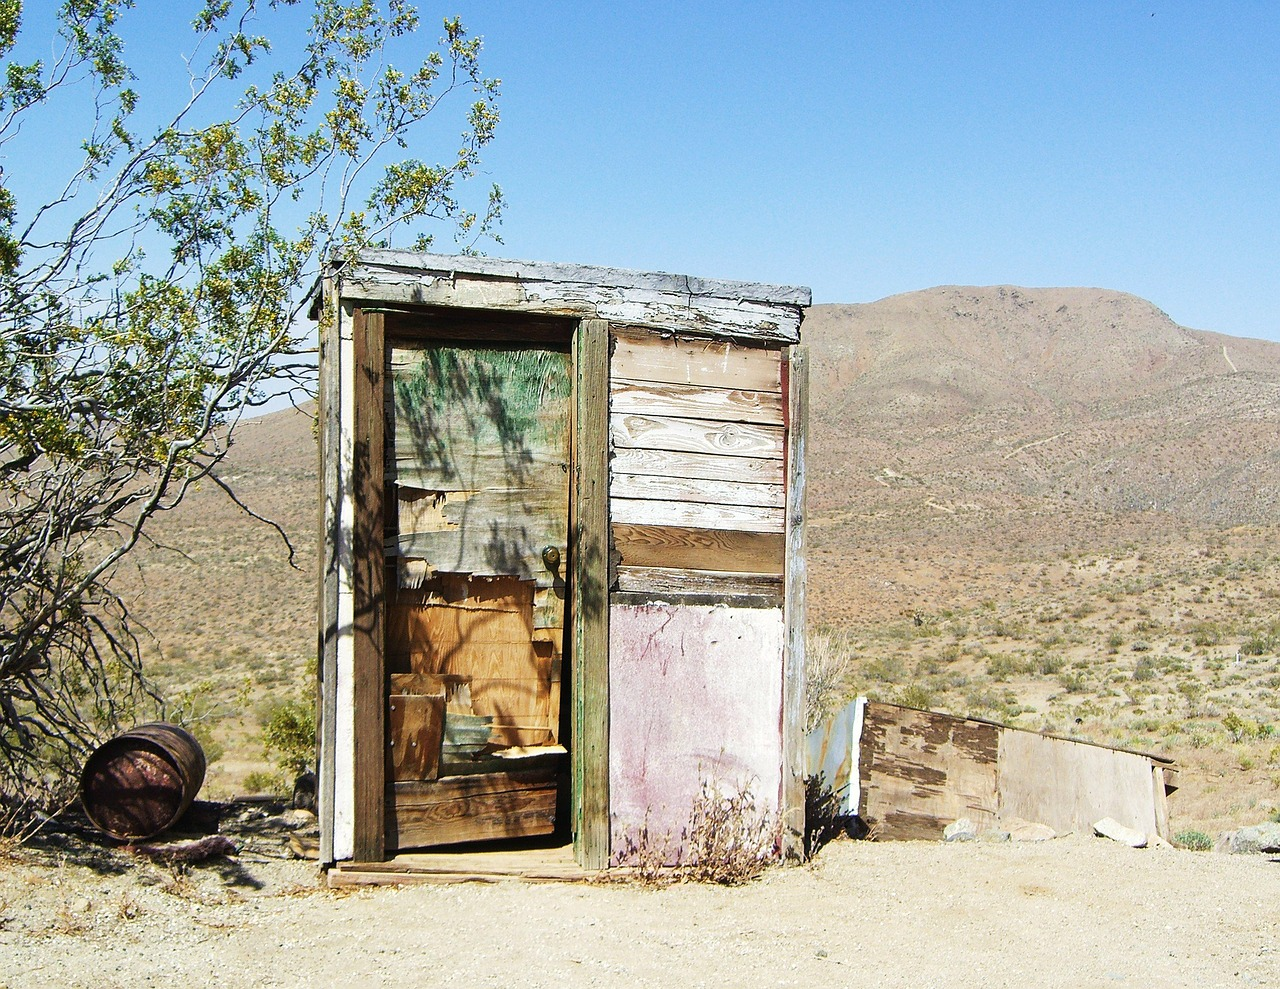 mojave desert,outhouse,dilapidated,disrepair,bathroom,toilet,restroom,deserted,run down,fixer upper,california,ghost town,free pictures, free photos, free images, royalty free, free illustrations, public domain